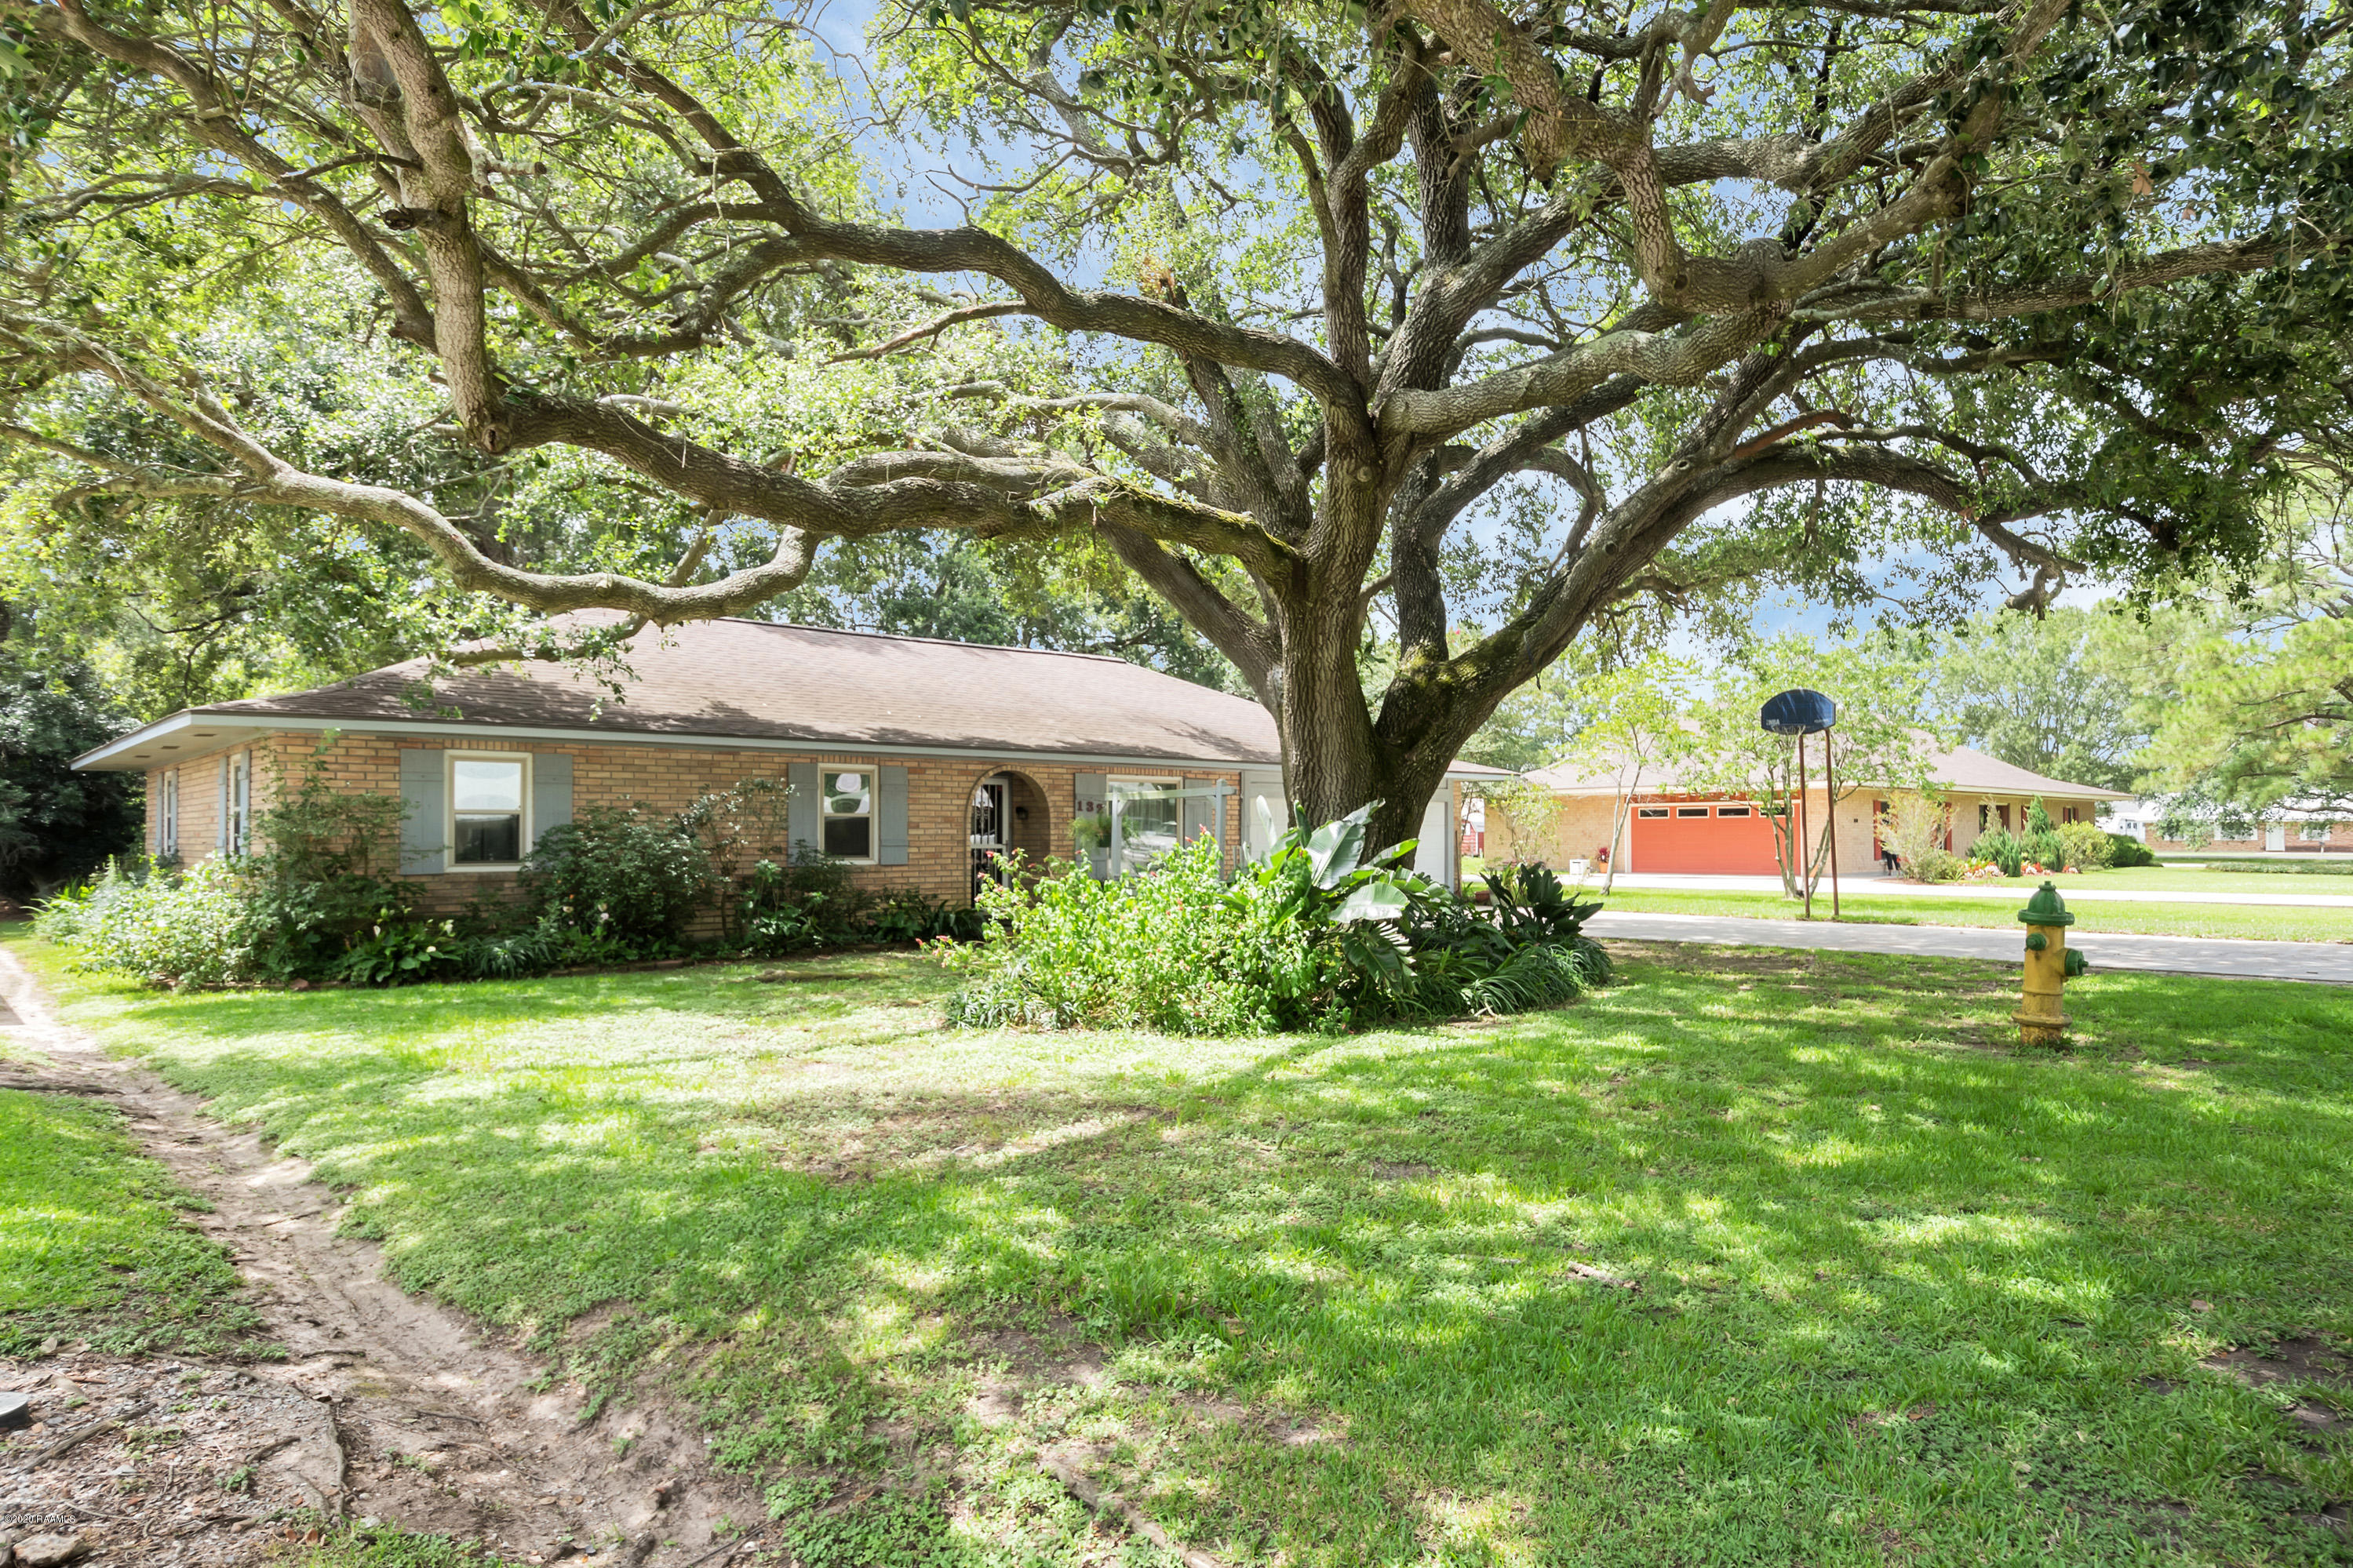 132 Richlieu Circle, Kaplan, LA 70548 Photo #3